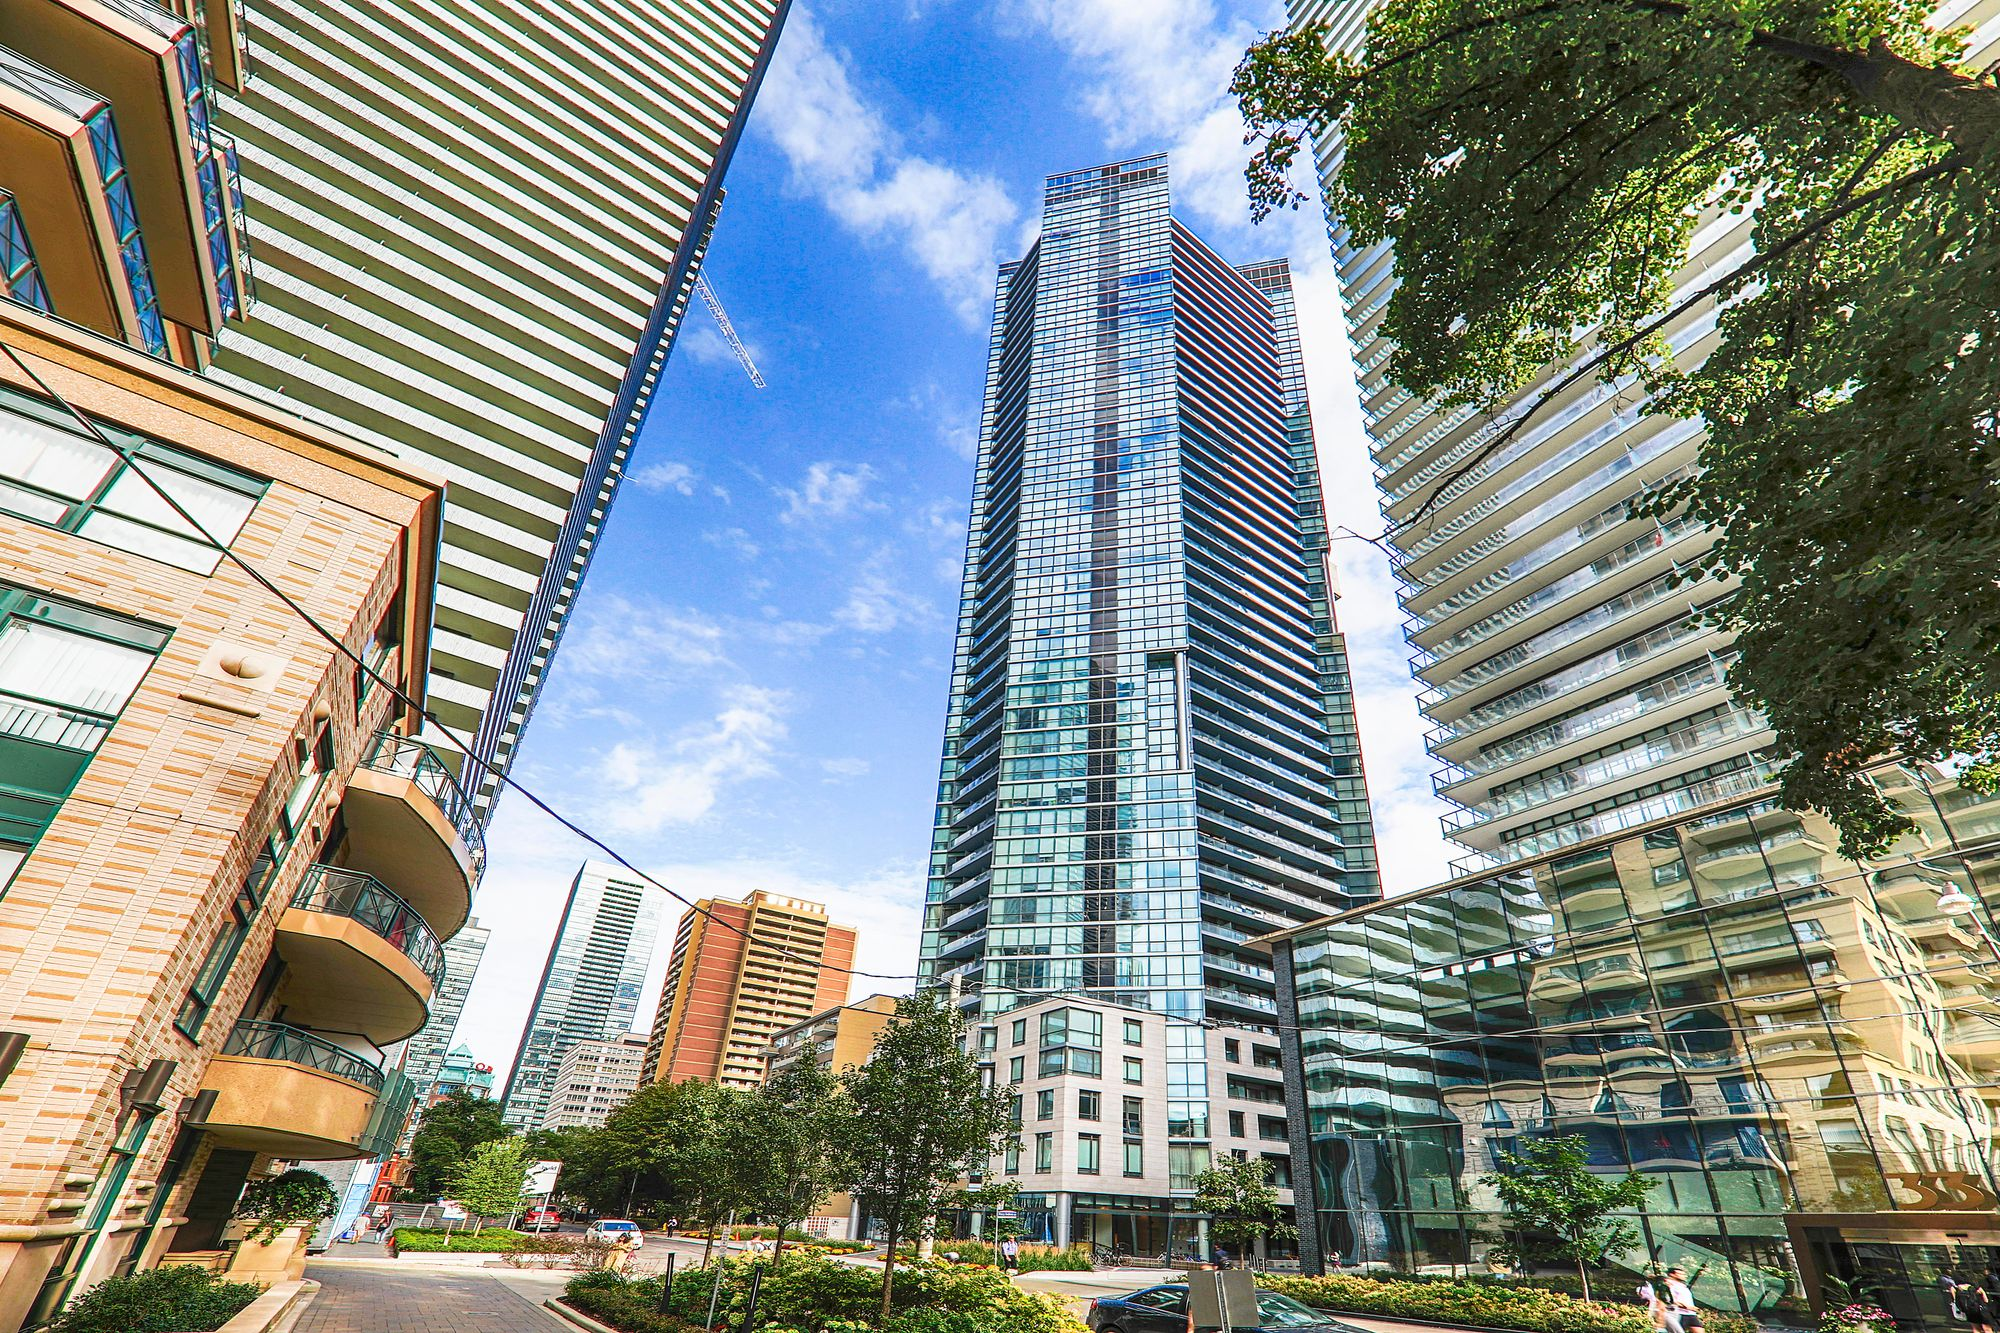 45 Charles St E, unit 810 for rent in Yonge and Bloor - image #1